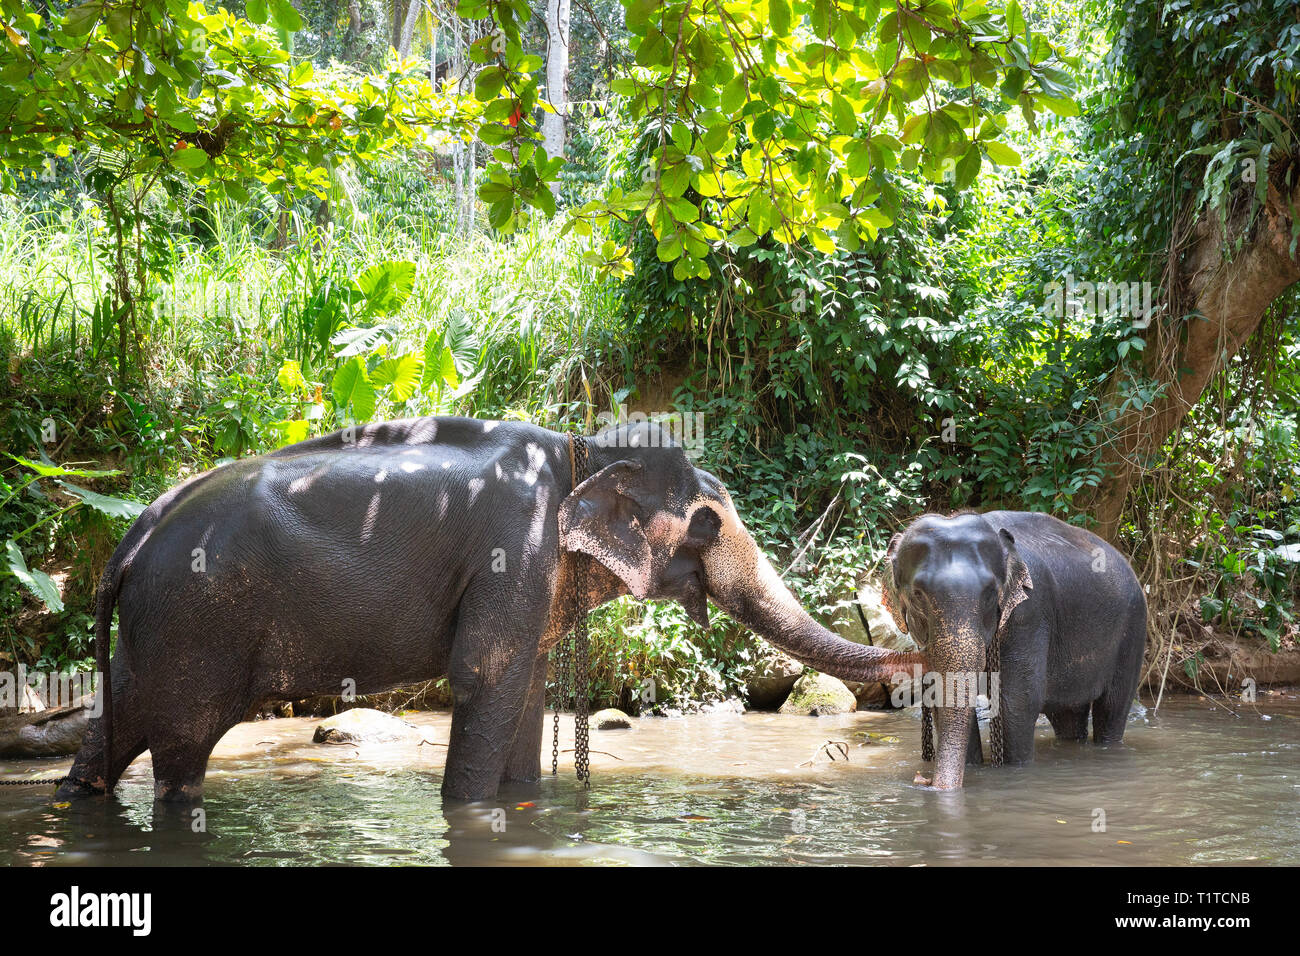 Tourist Asian elephants in captivity, chained, abused for attracting tourists. Animal rights, animal abuse, responsible tourism and ethics concept. - Stock Image